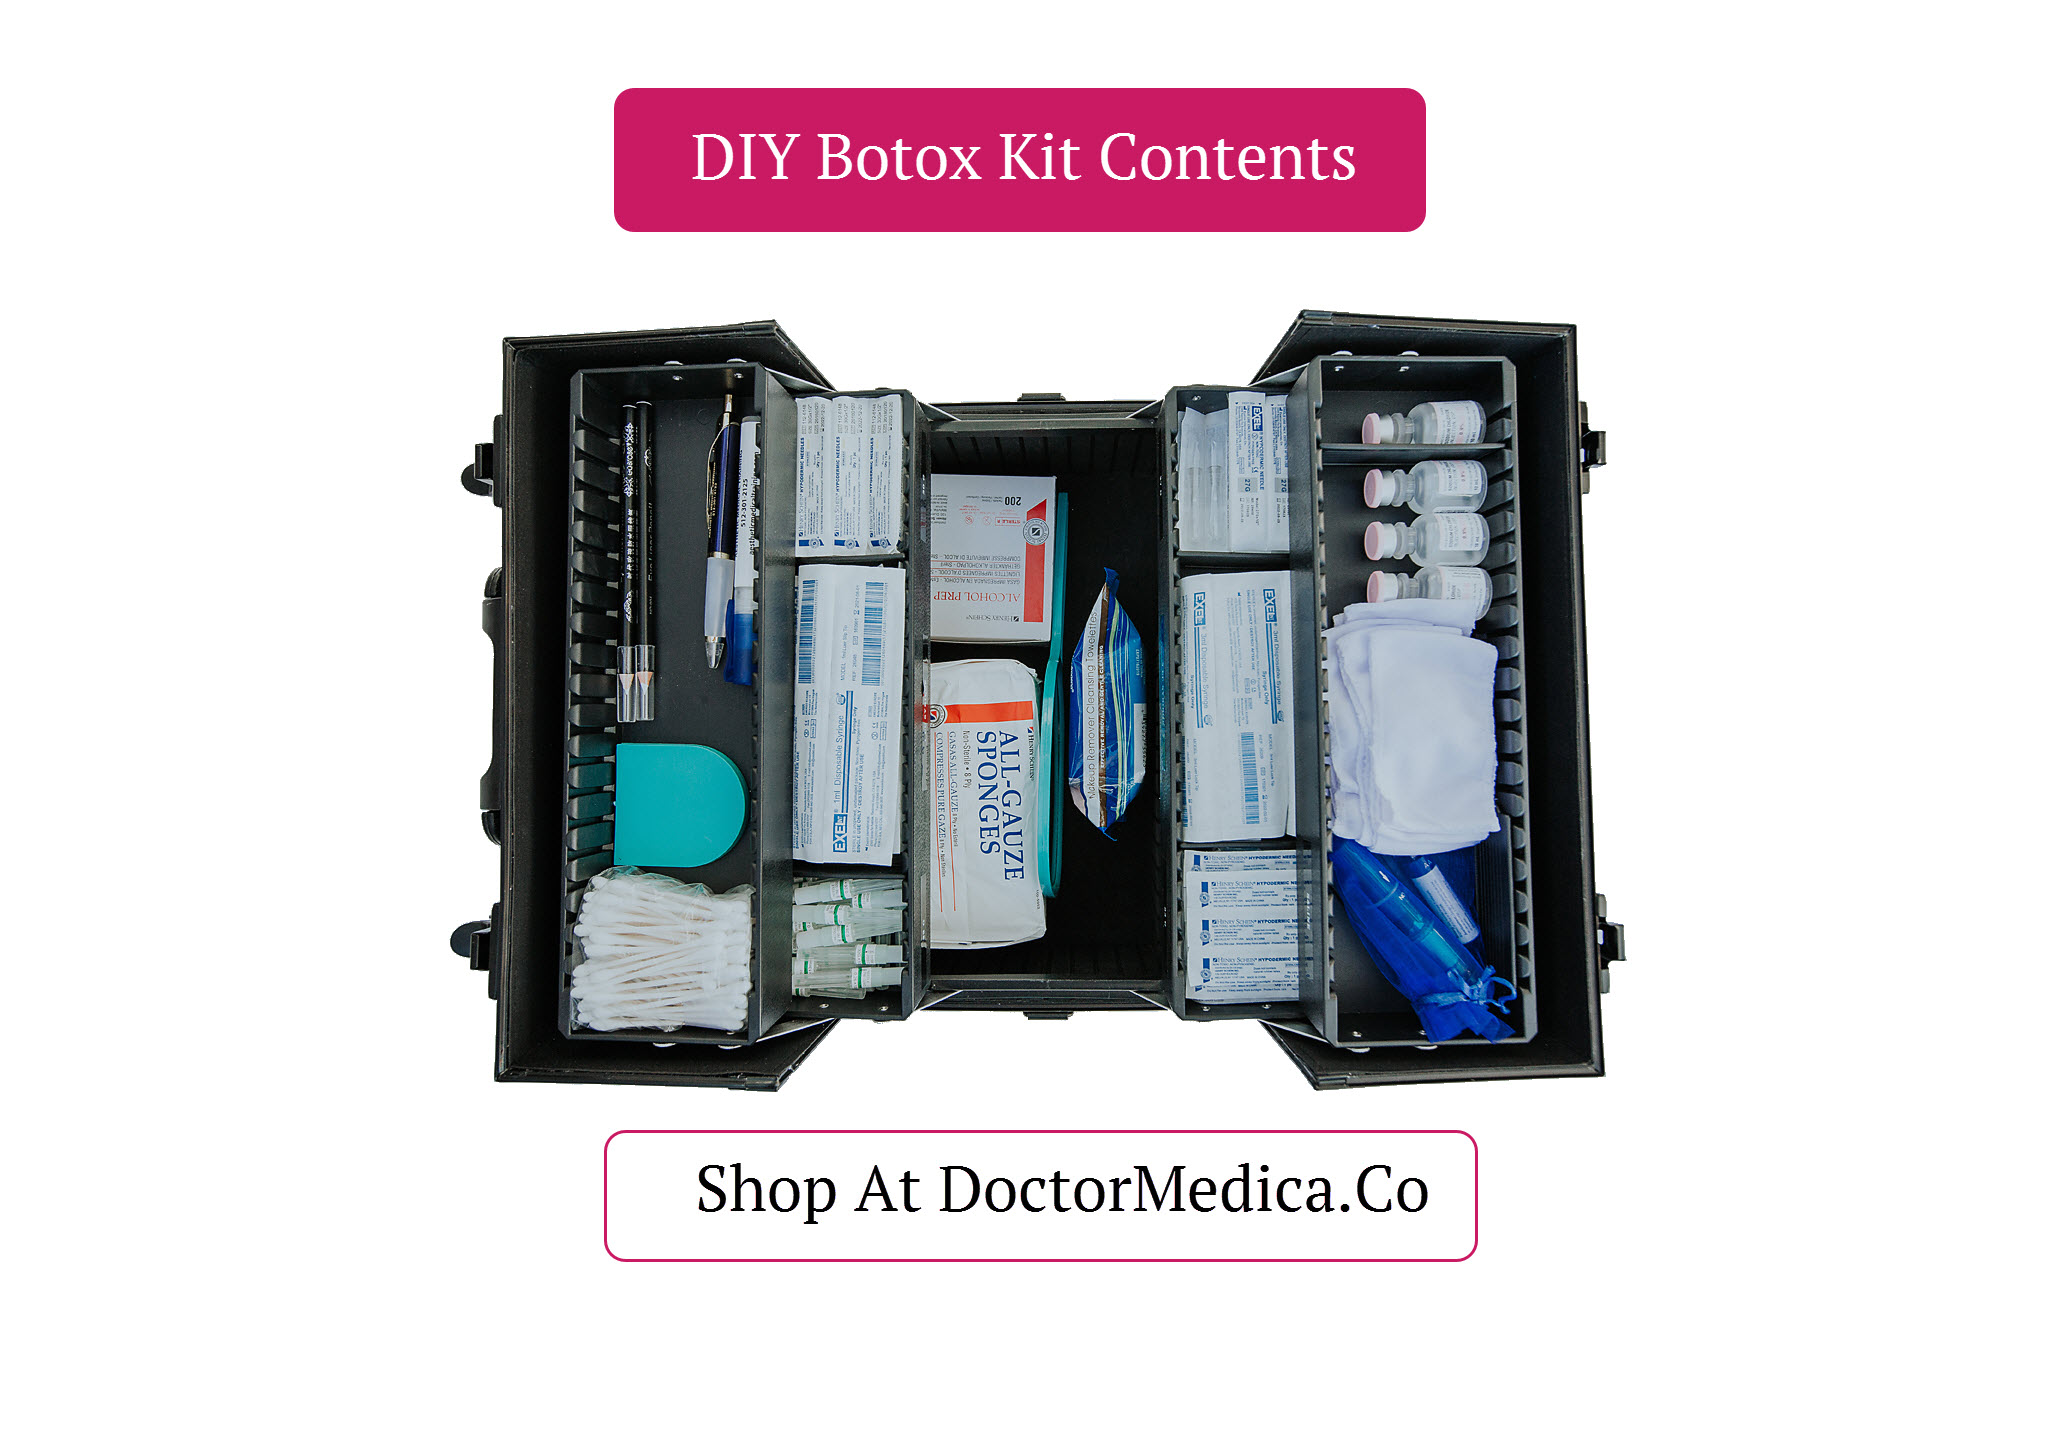 Picture of DIY Home Botox Kit Contents